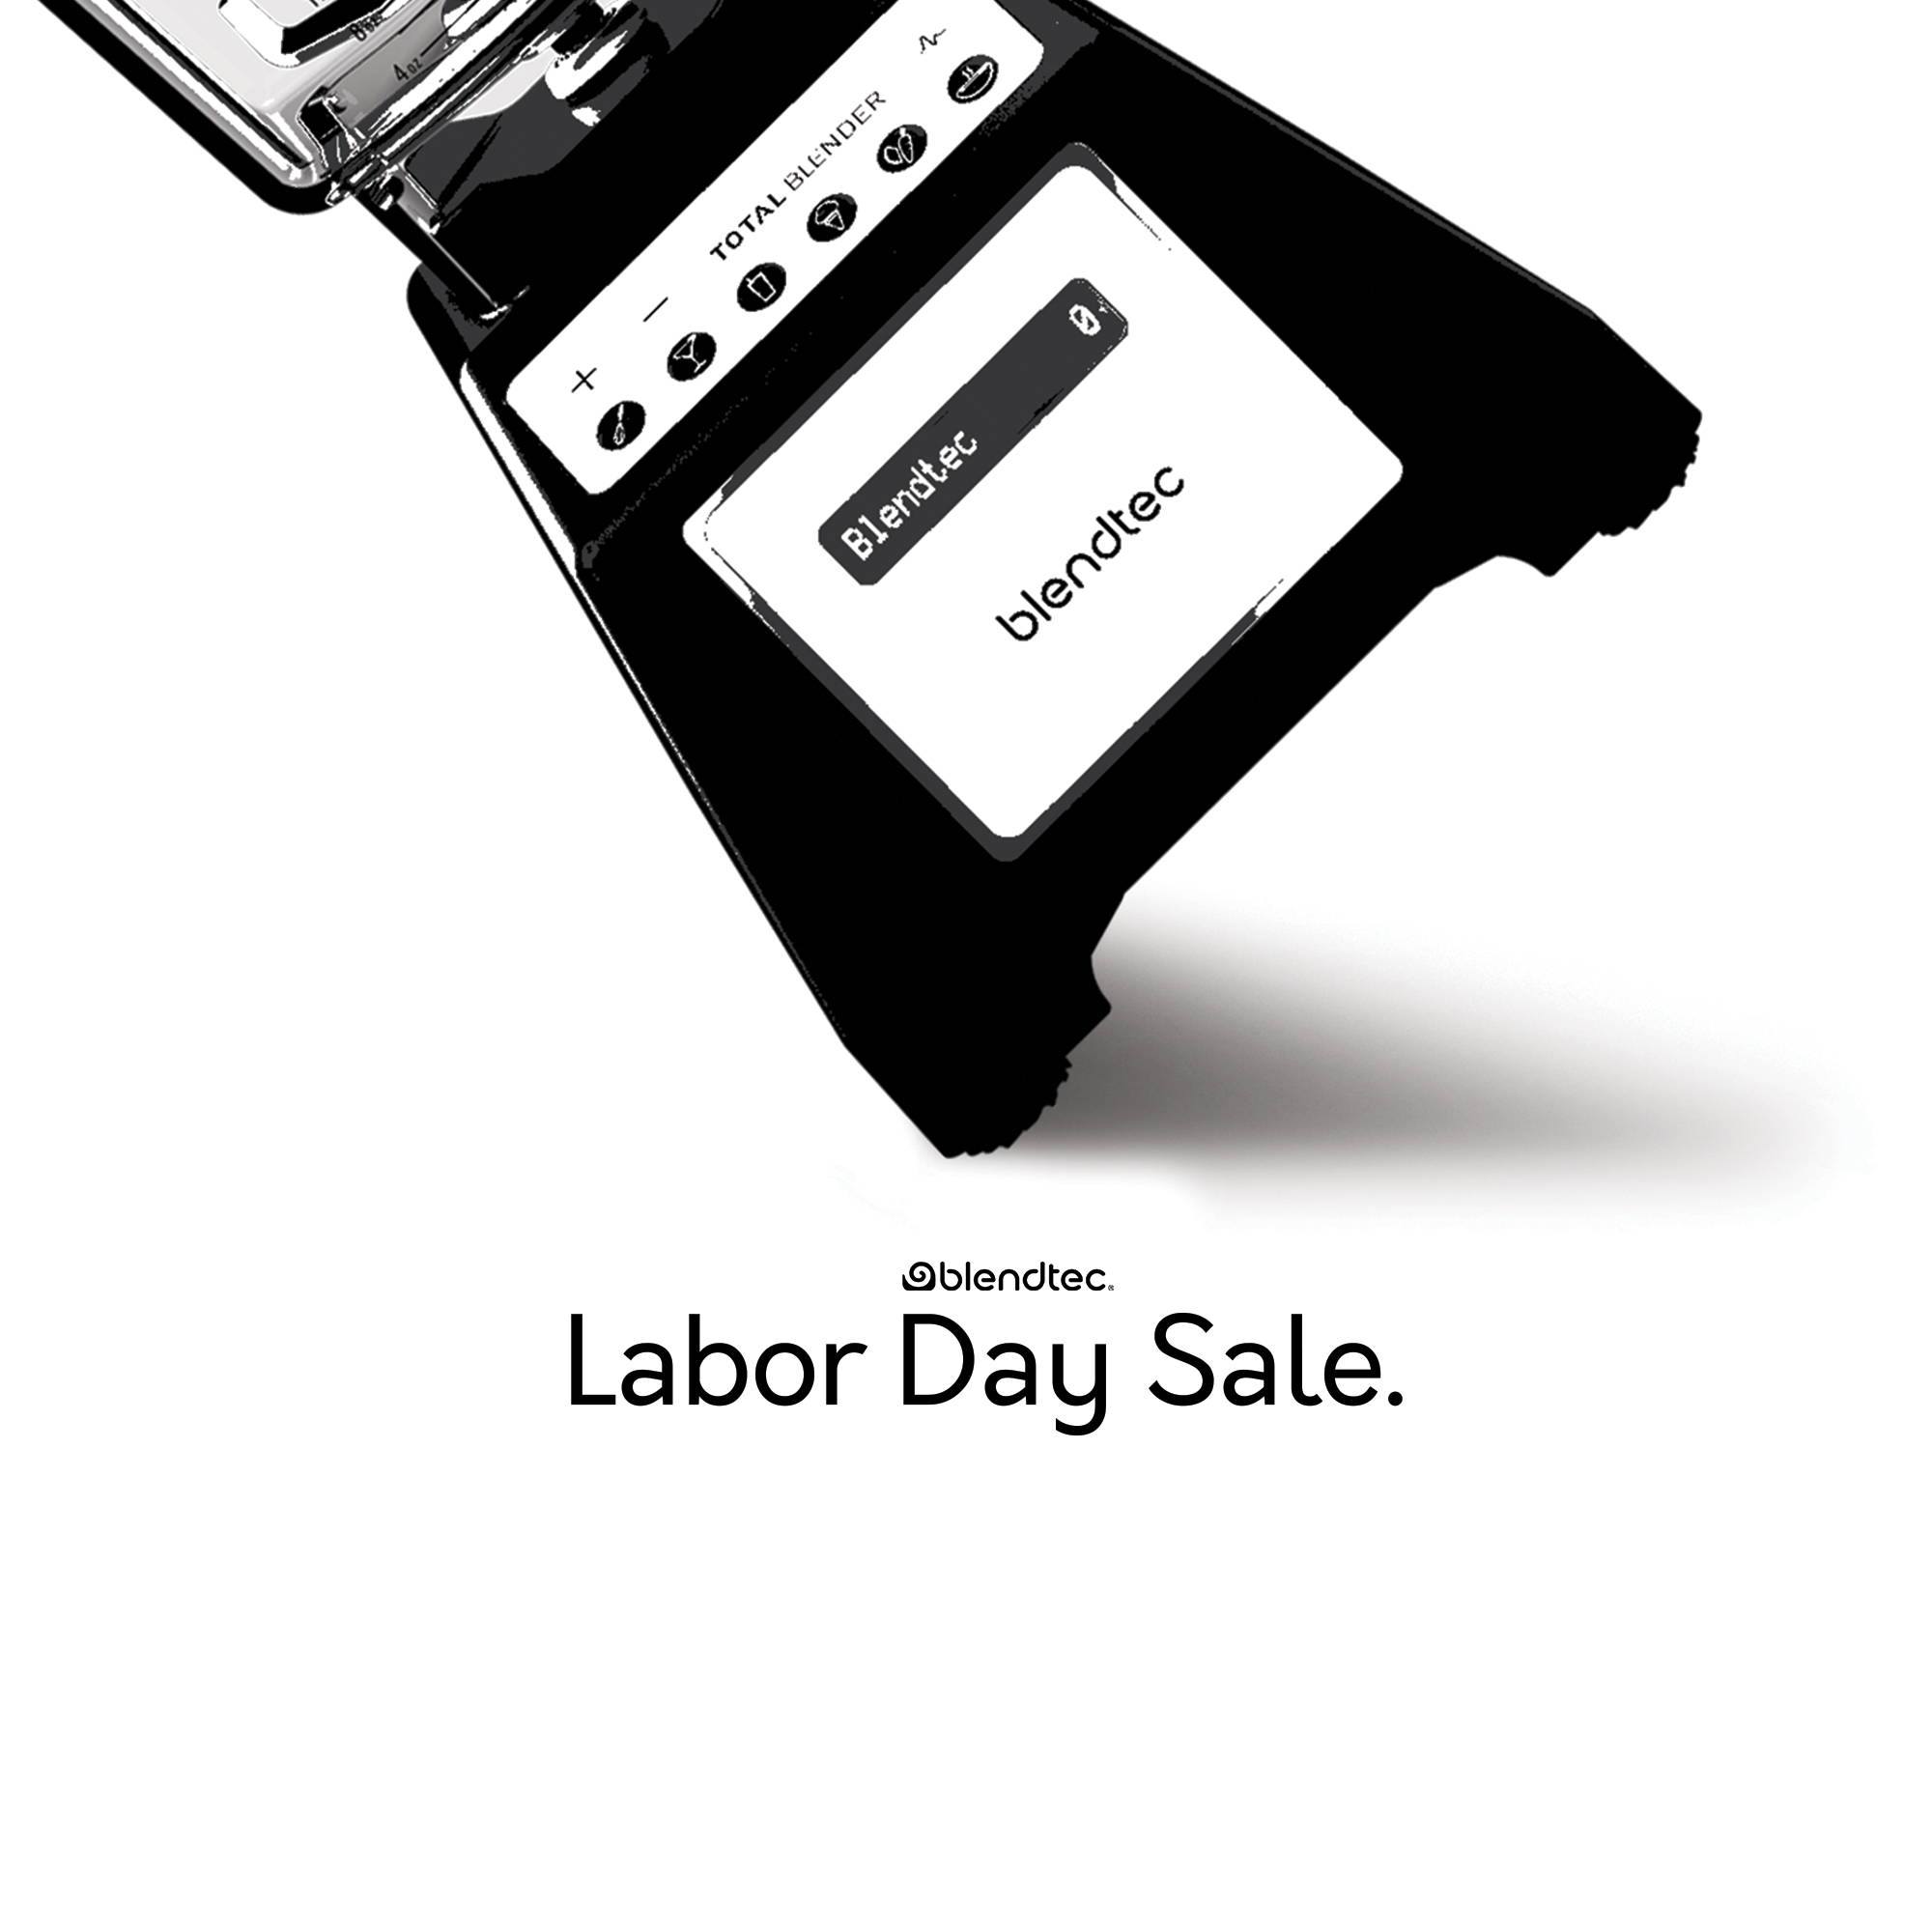 Total Blender Labor Day Sale